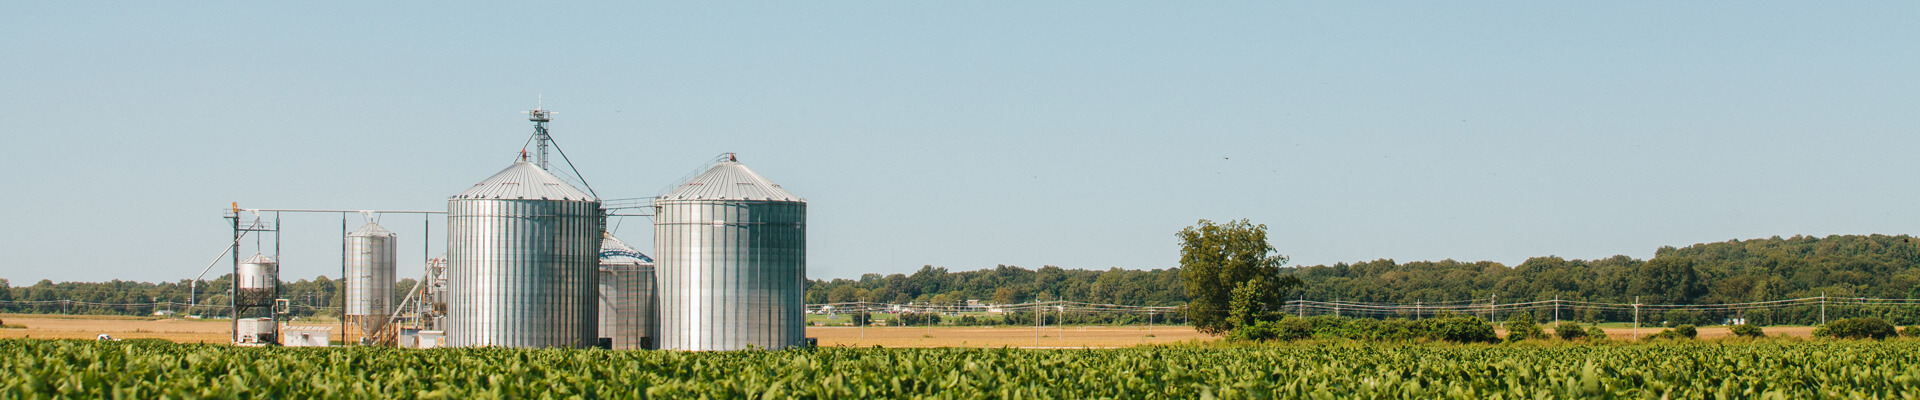 Field and grain bins with trees in the background.